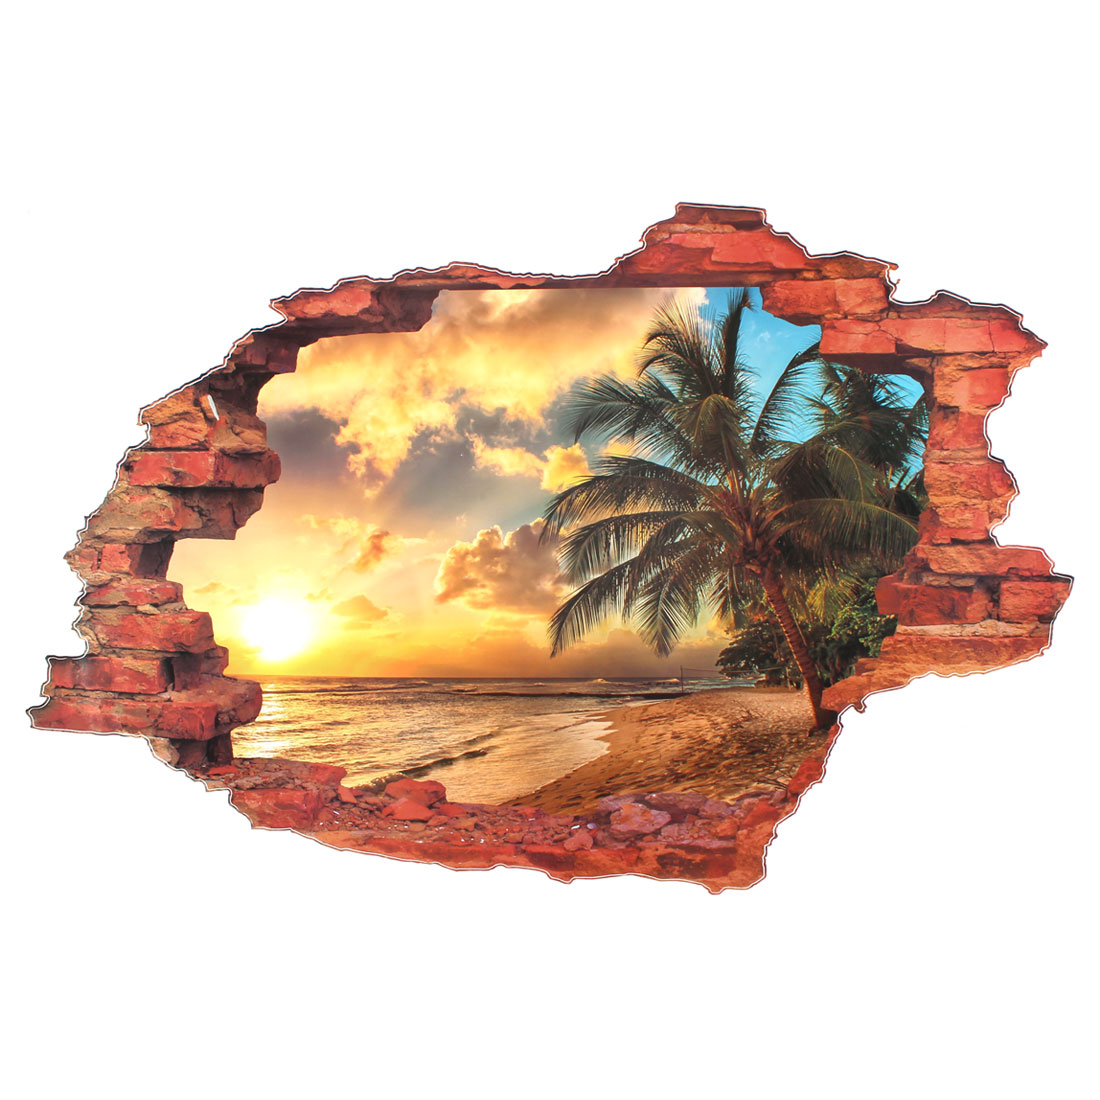 Home 3D Seabeach Coconut Tree Scenery Pattern Art Decal Wall Sticker Mural